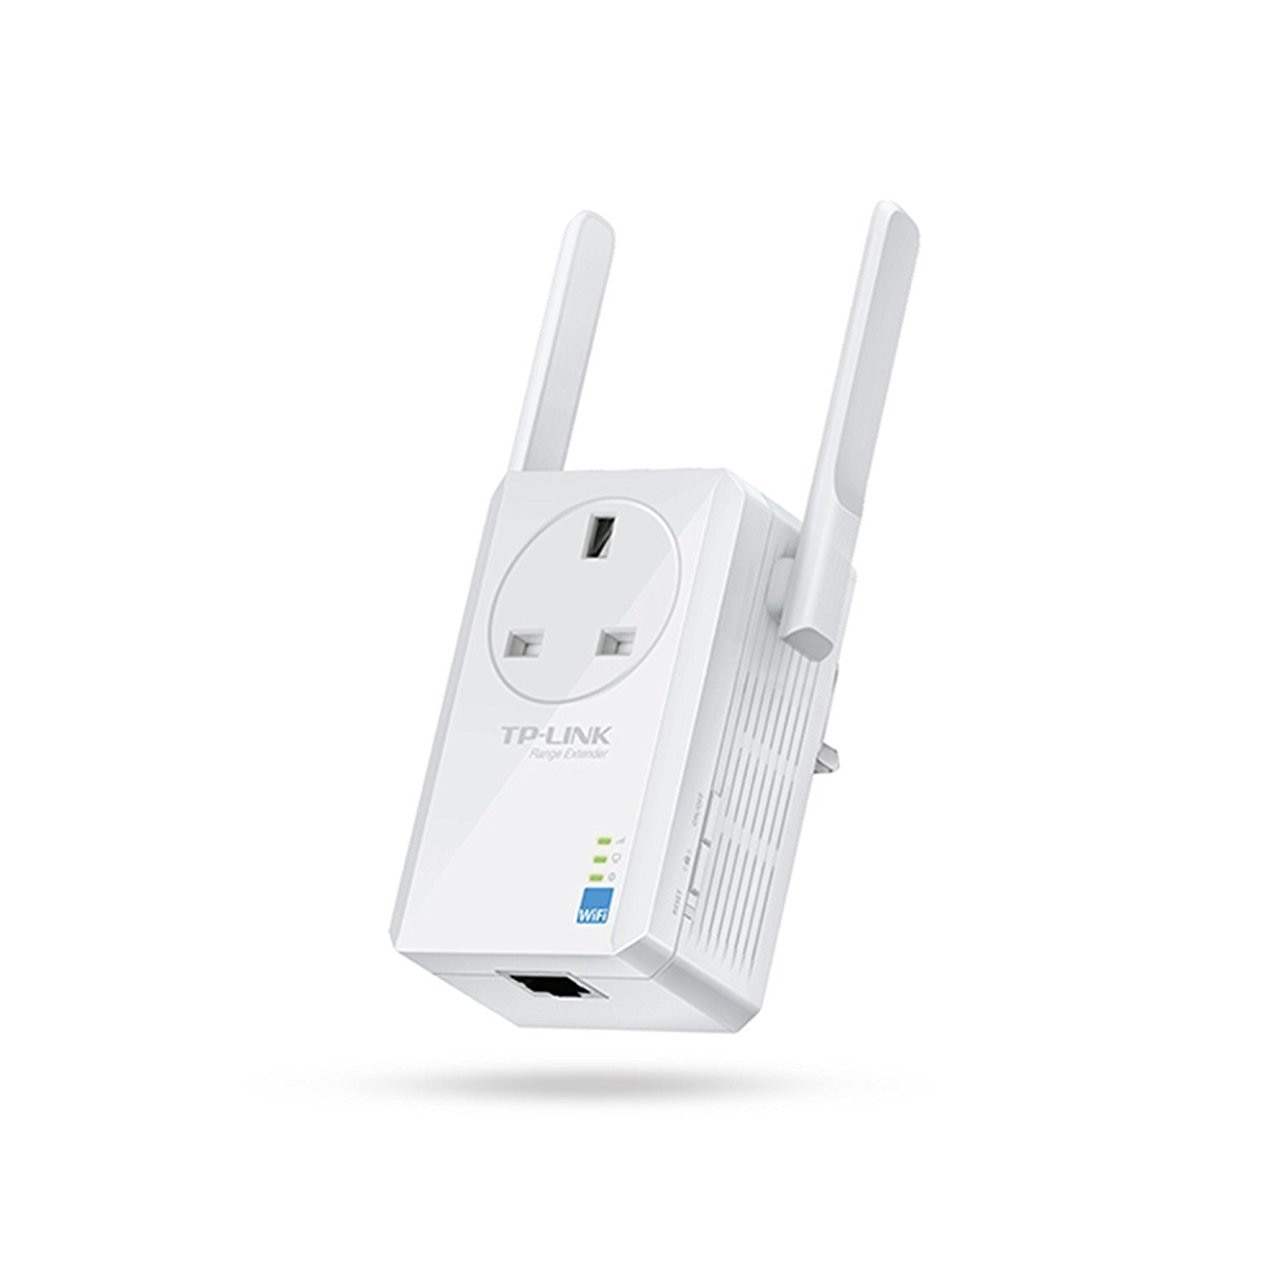 TP-LINK TL-WA860RE IEEE 802.11n 300 Mbps Wireless Range Extender - ISM Band